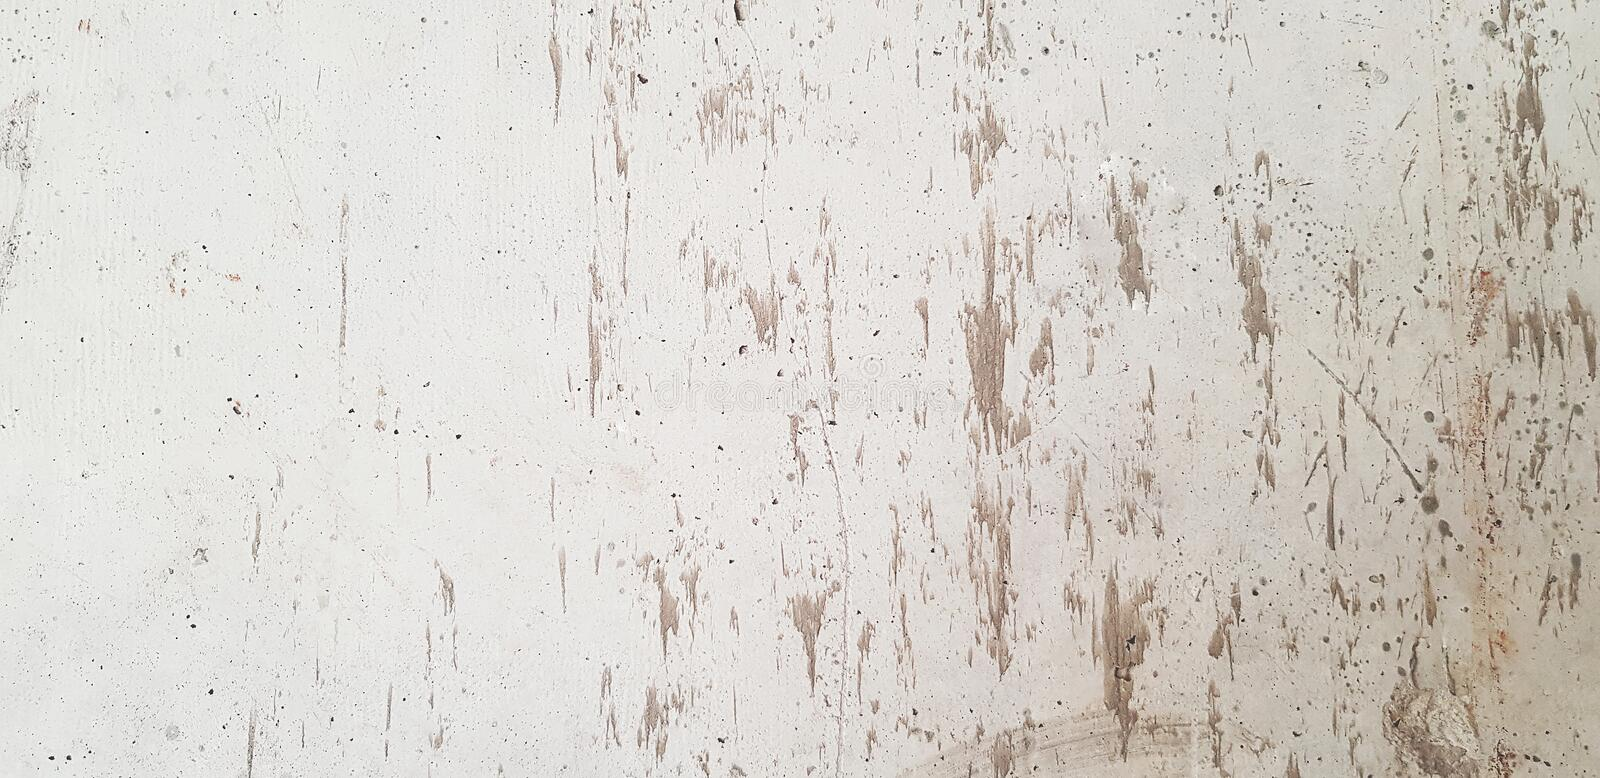 Dirty white wall or wallpaper for background. Hard Surface stock photo